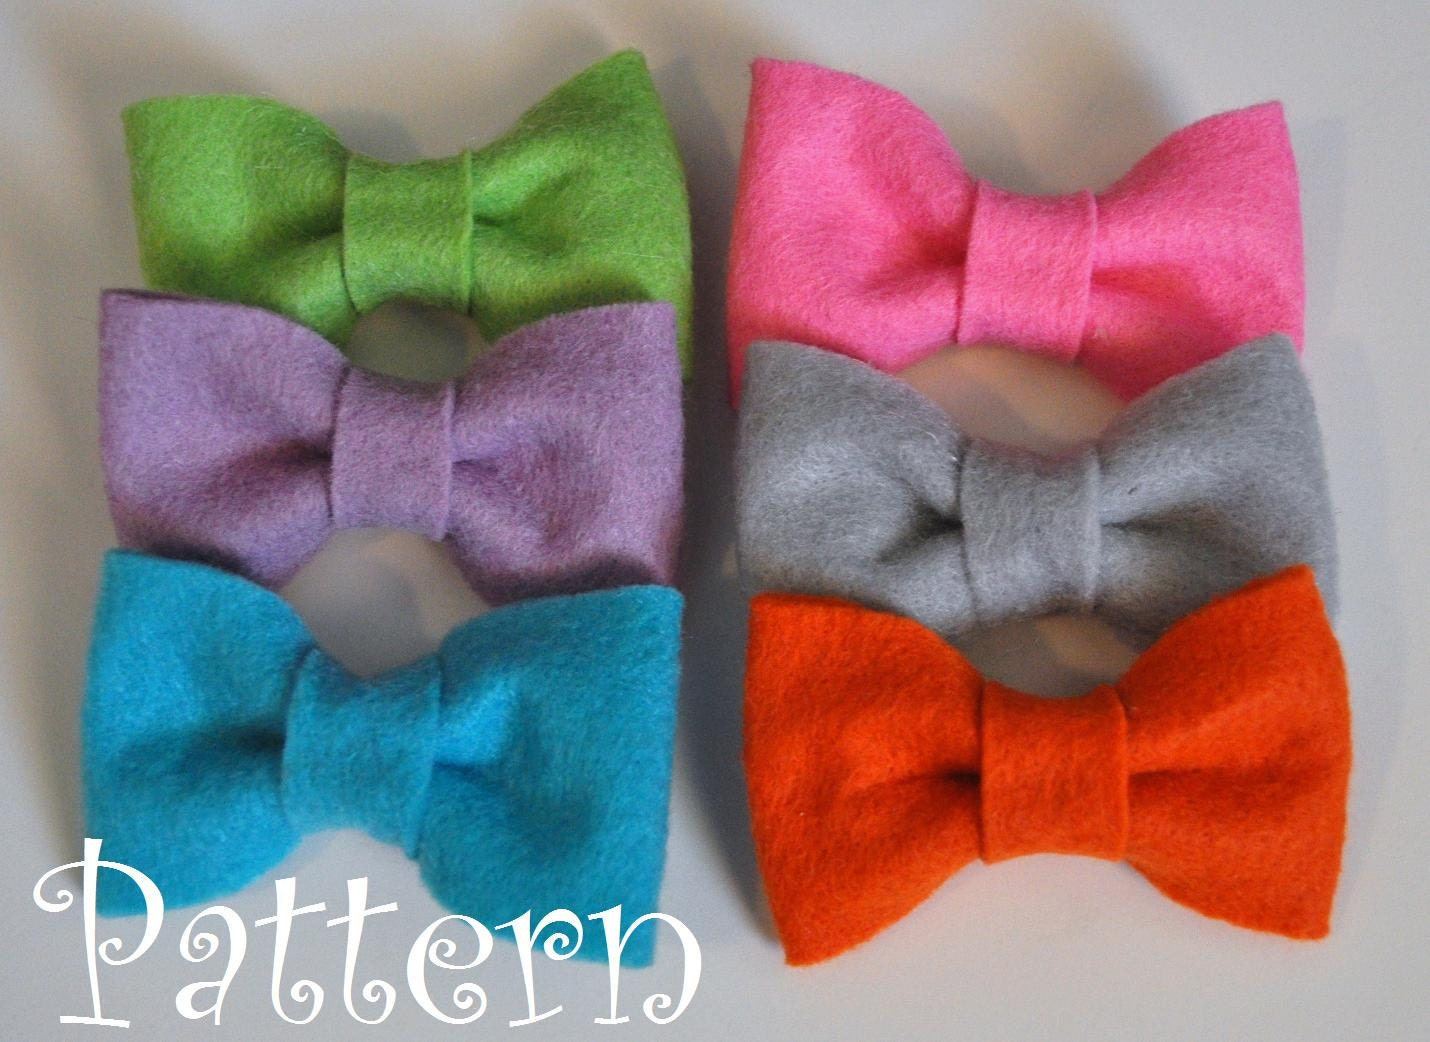 felt bow tie template - felt bow tie pattern tutorial with printable templates 3 bow